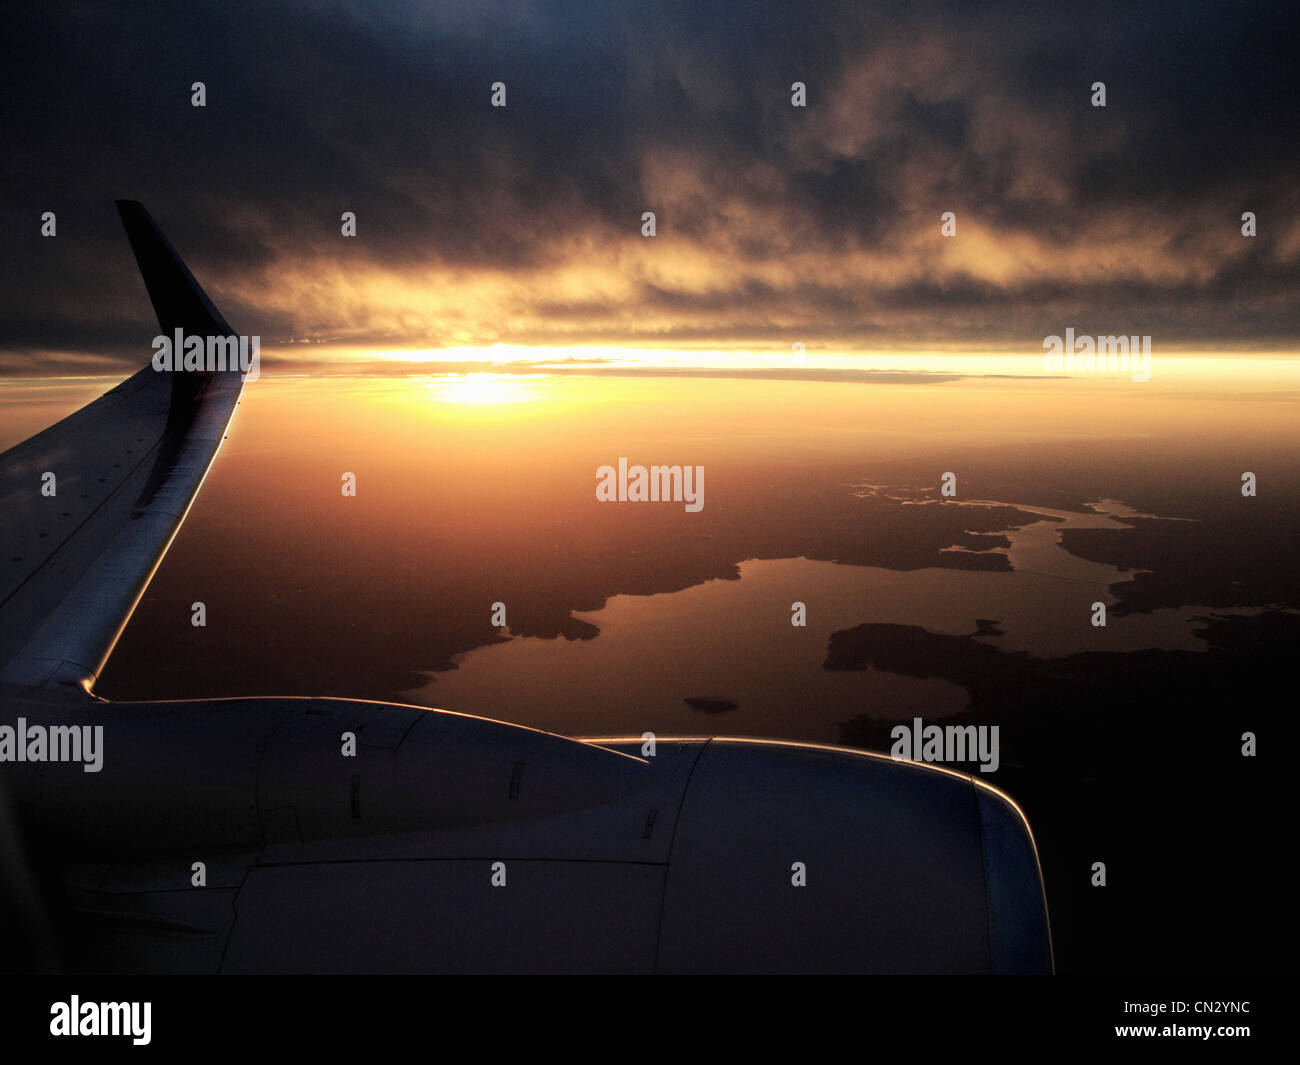 View from airplane - Stock Image